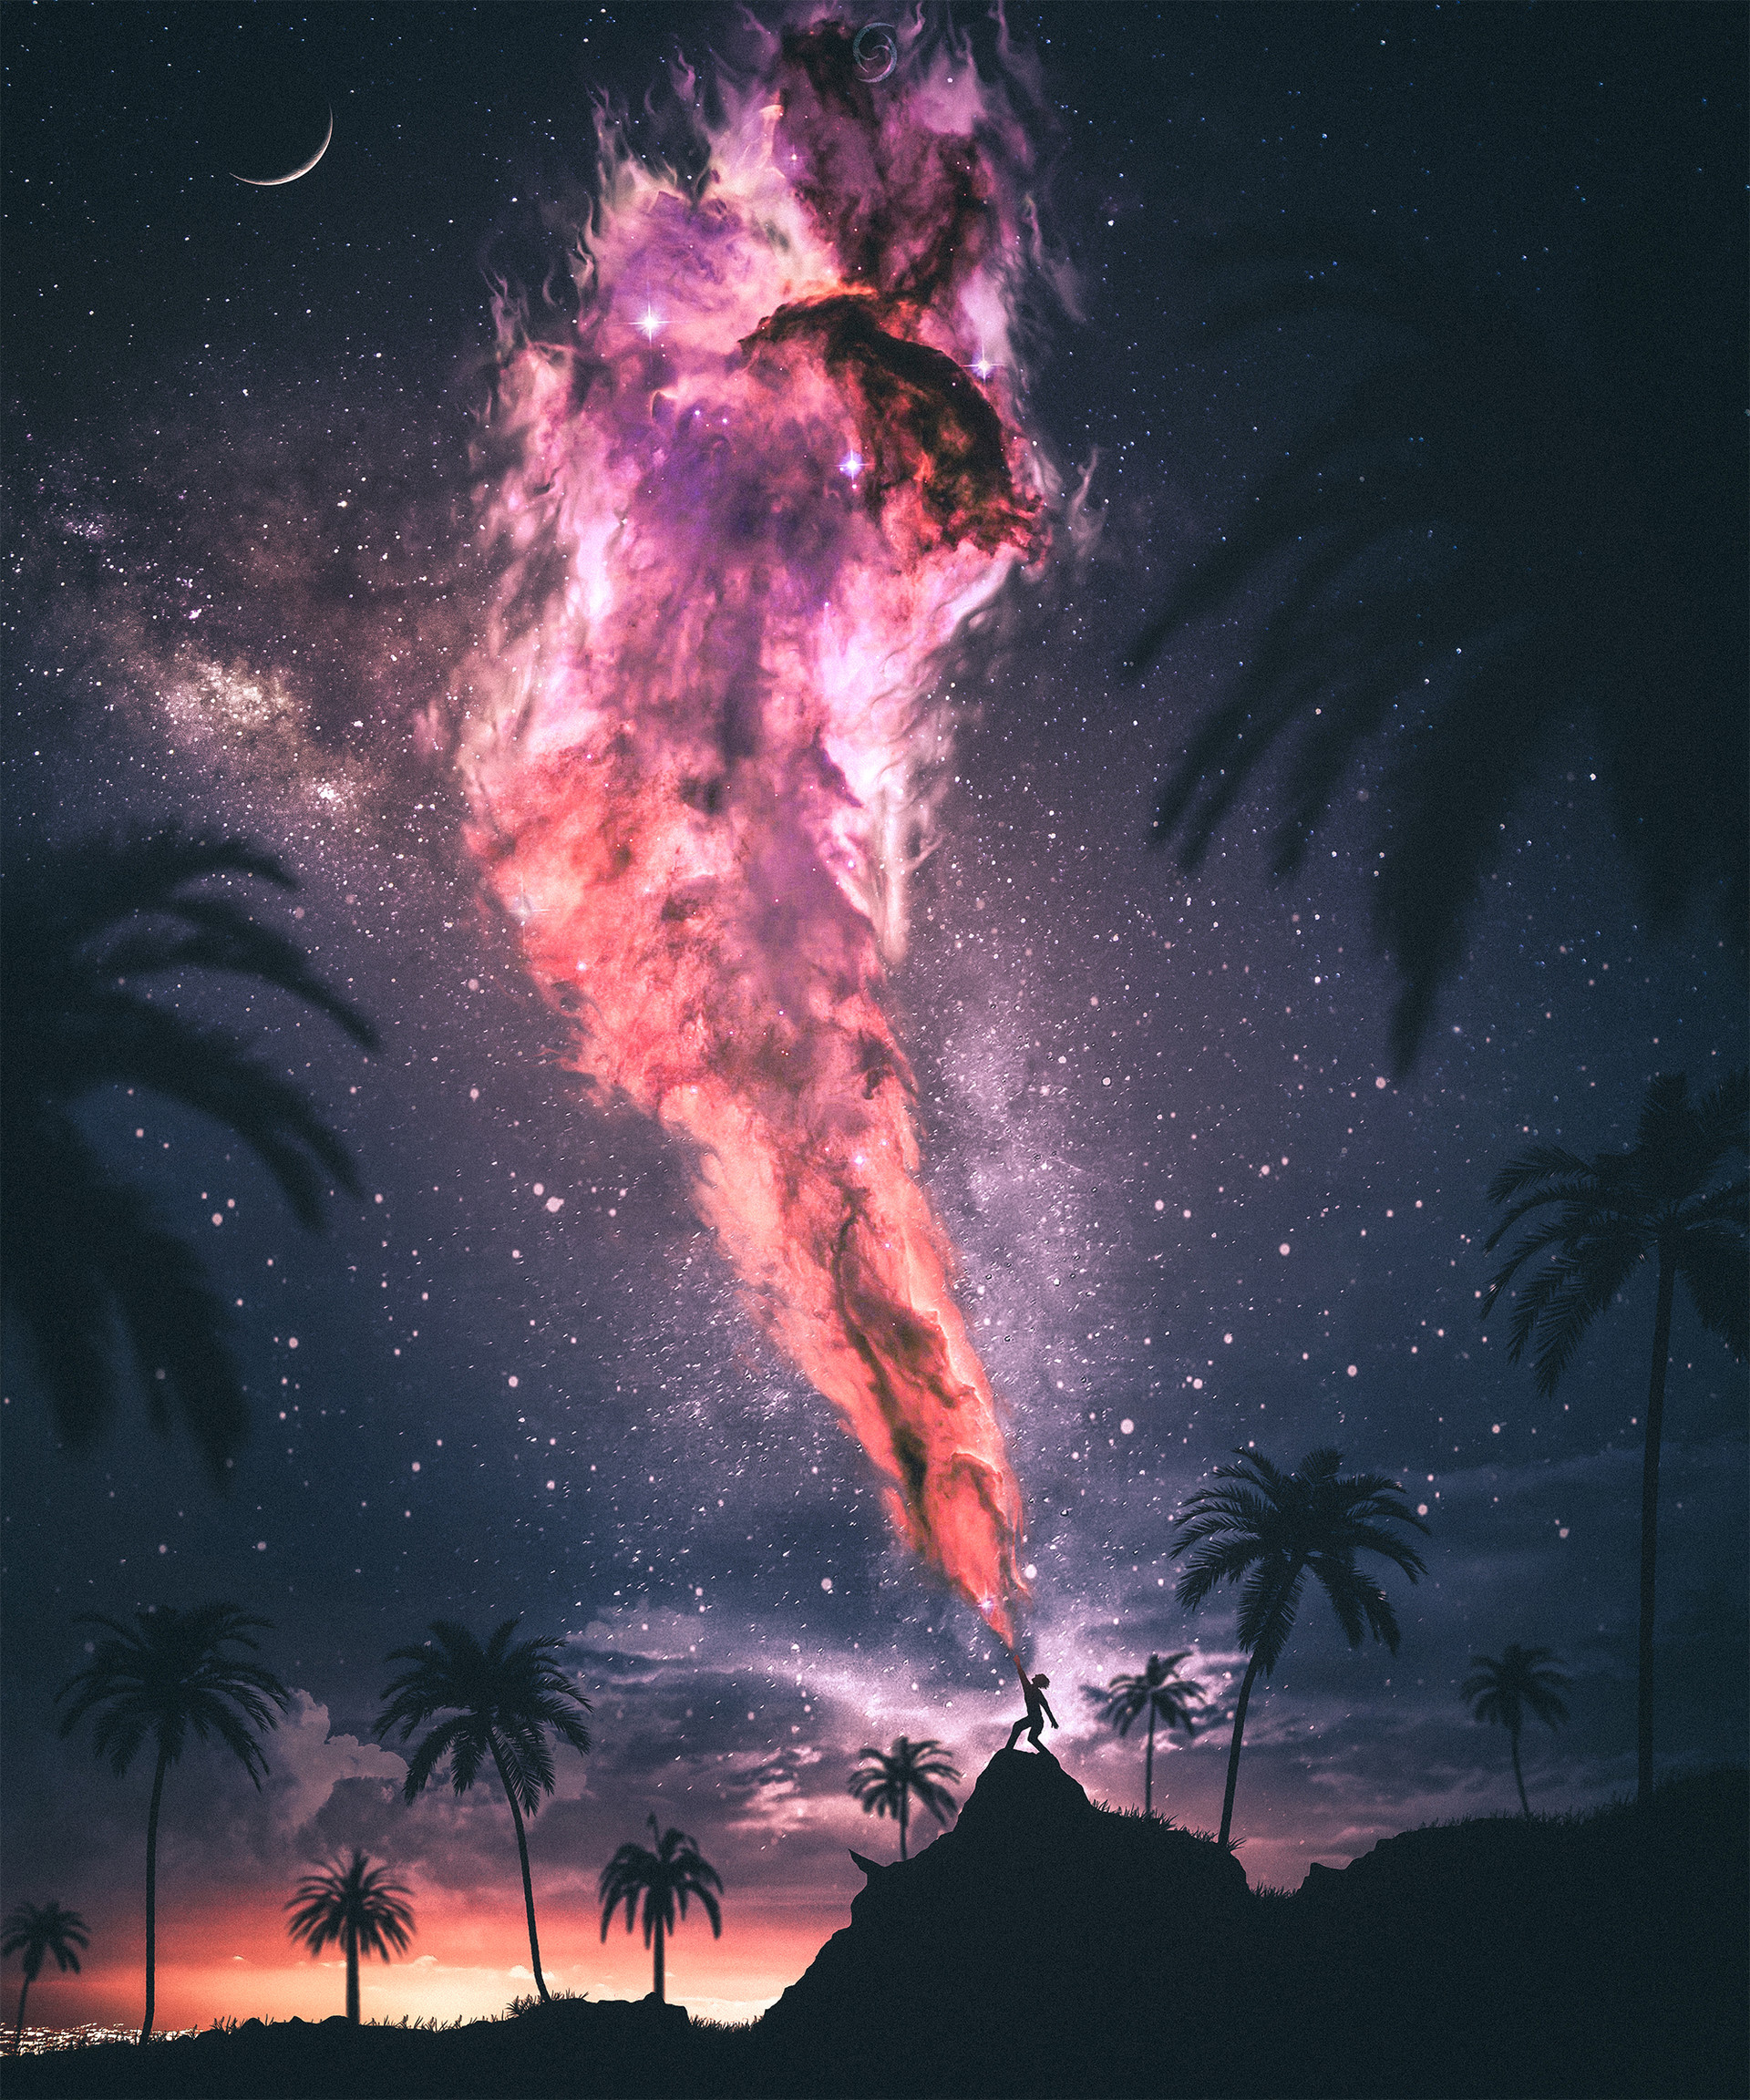 67361 download wallpaper Fantasy, Silhouette, Magic, Night, Force, Strength, Starry Sky screensavers and pictures for free